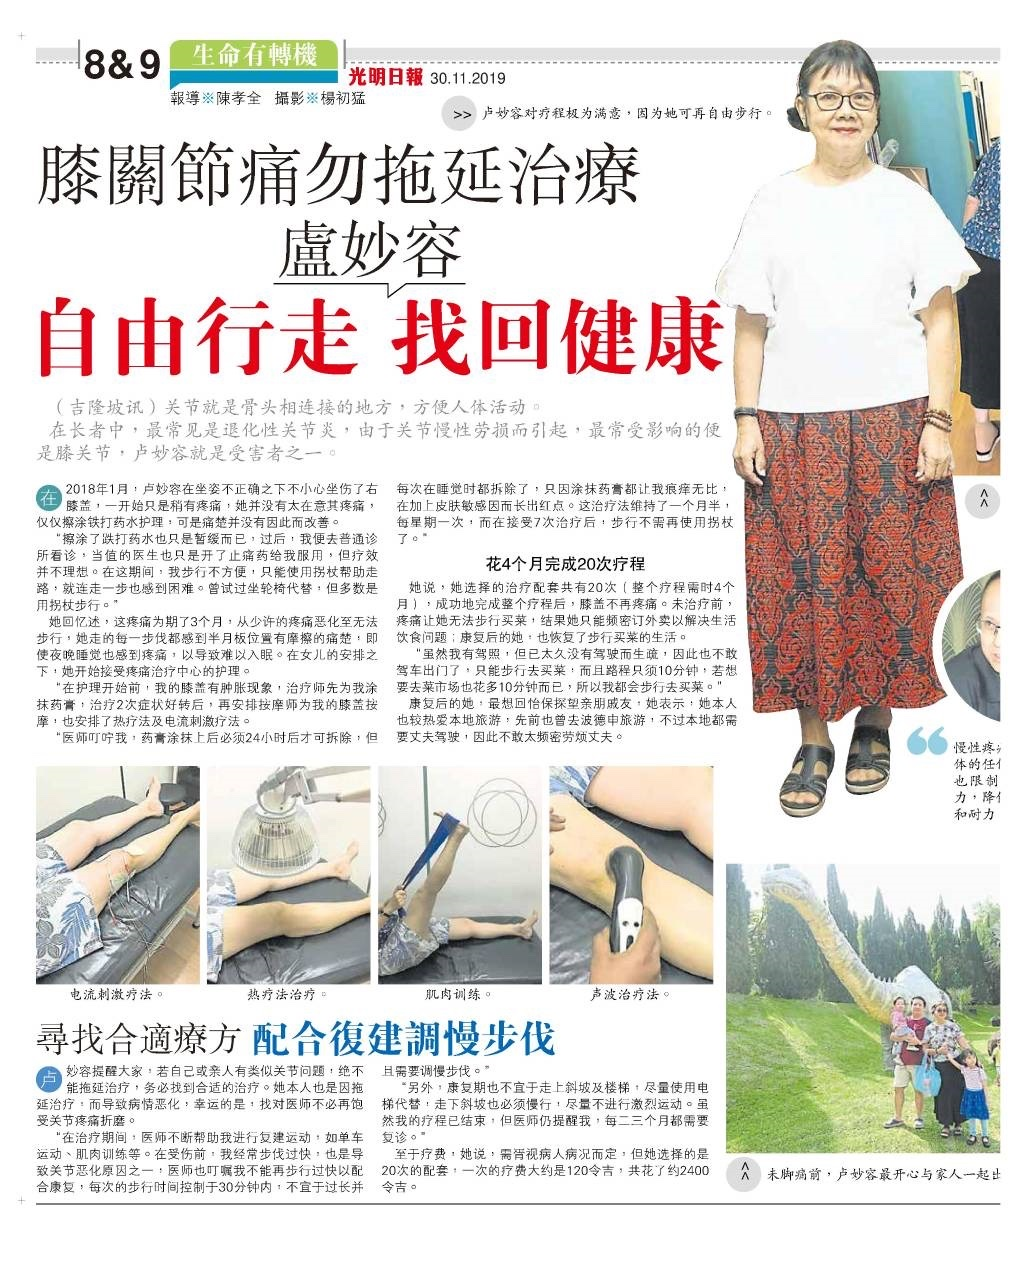 Guang Ming newspaper article about patient Irene Lo